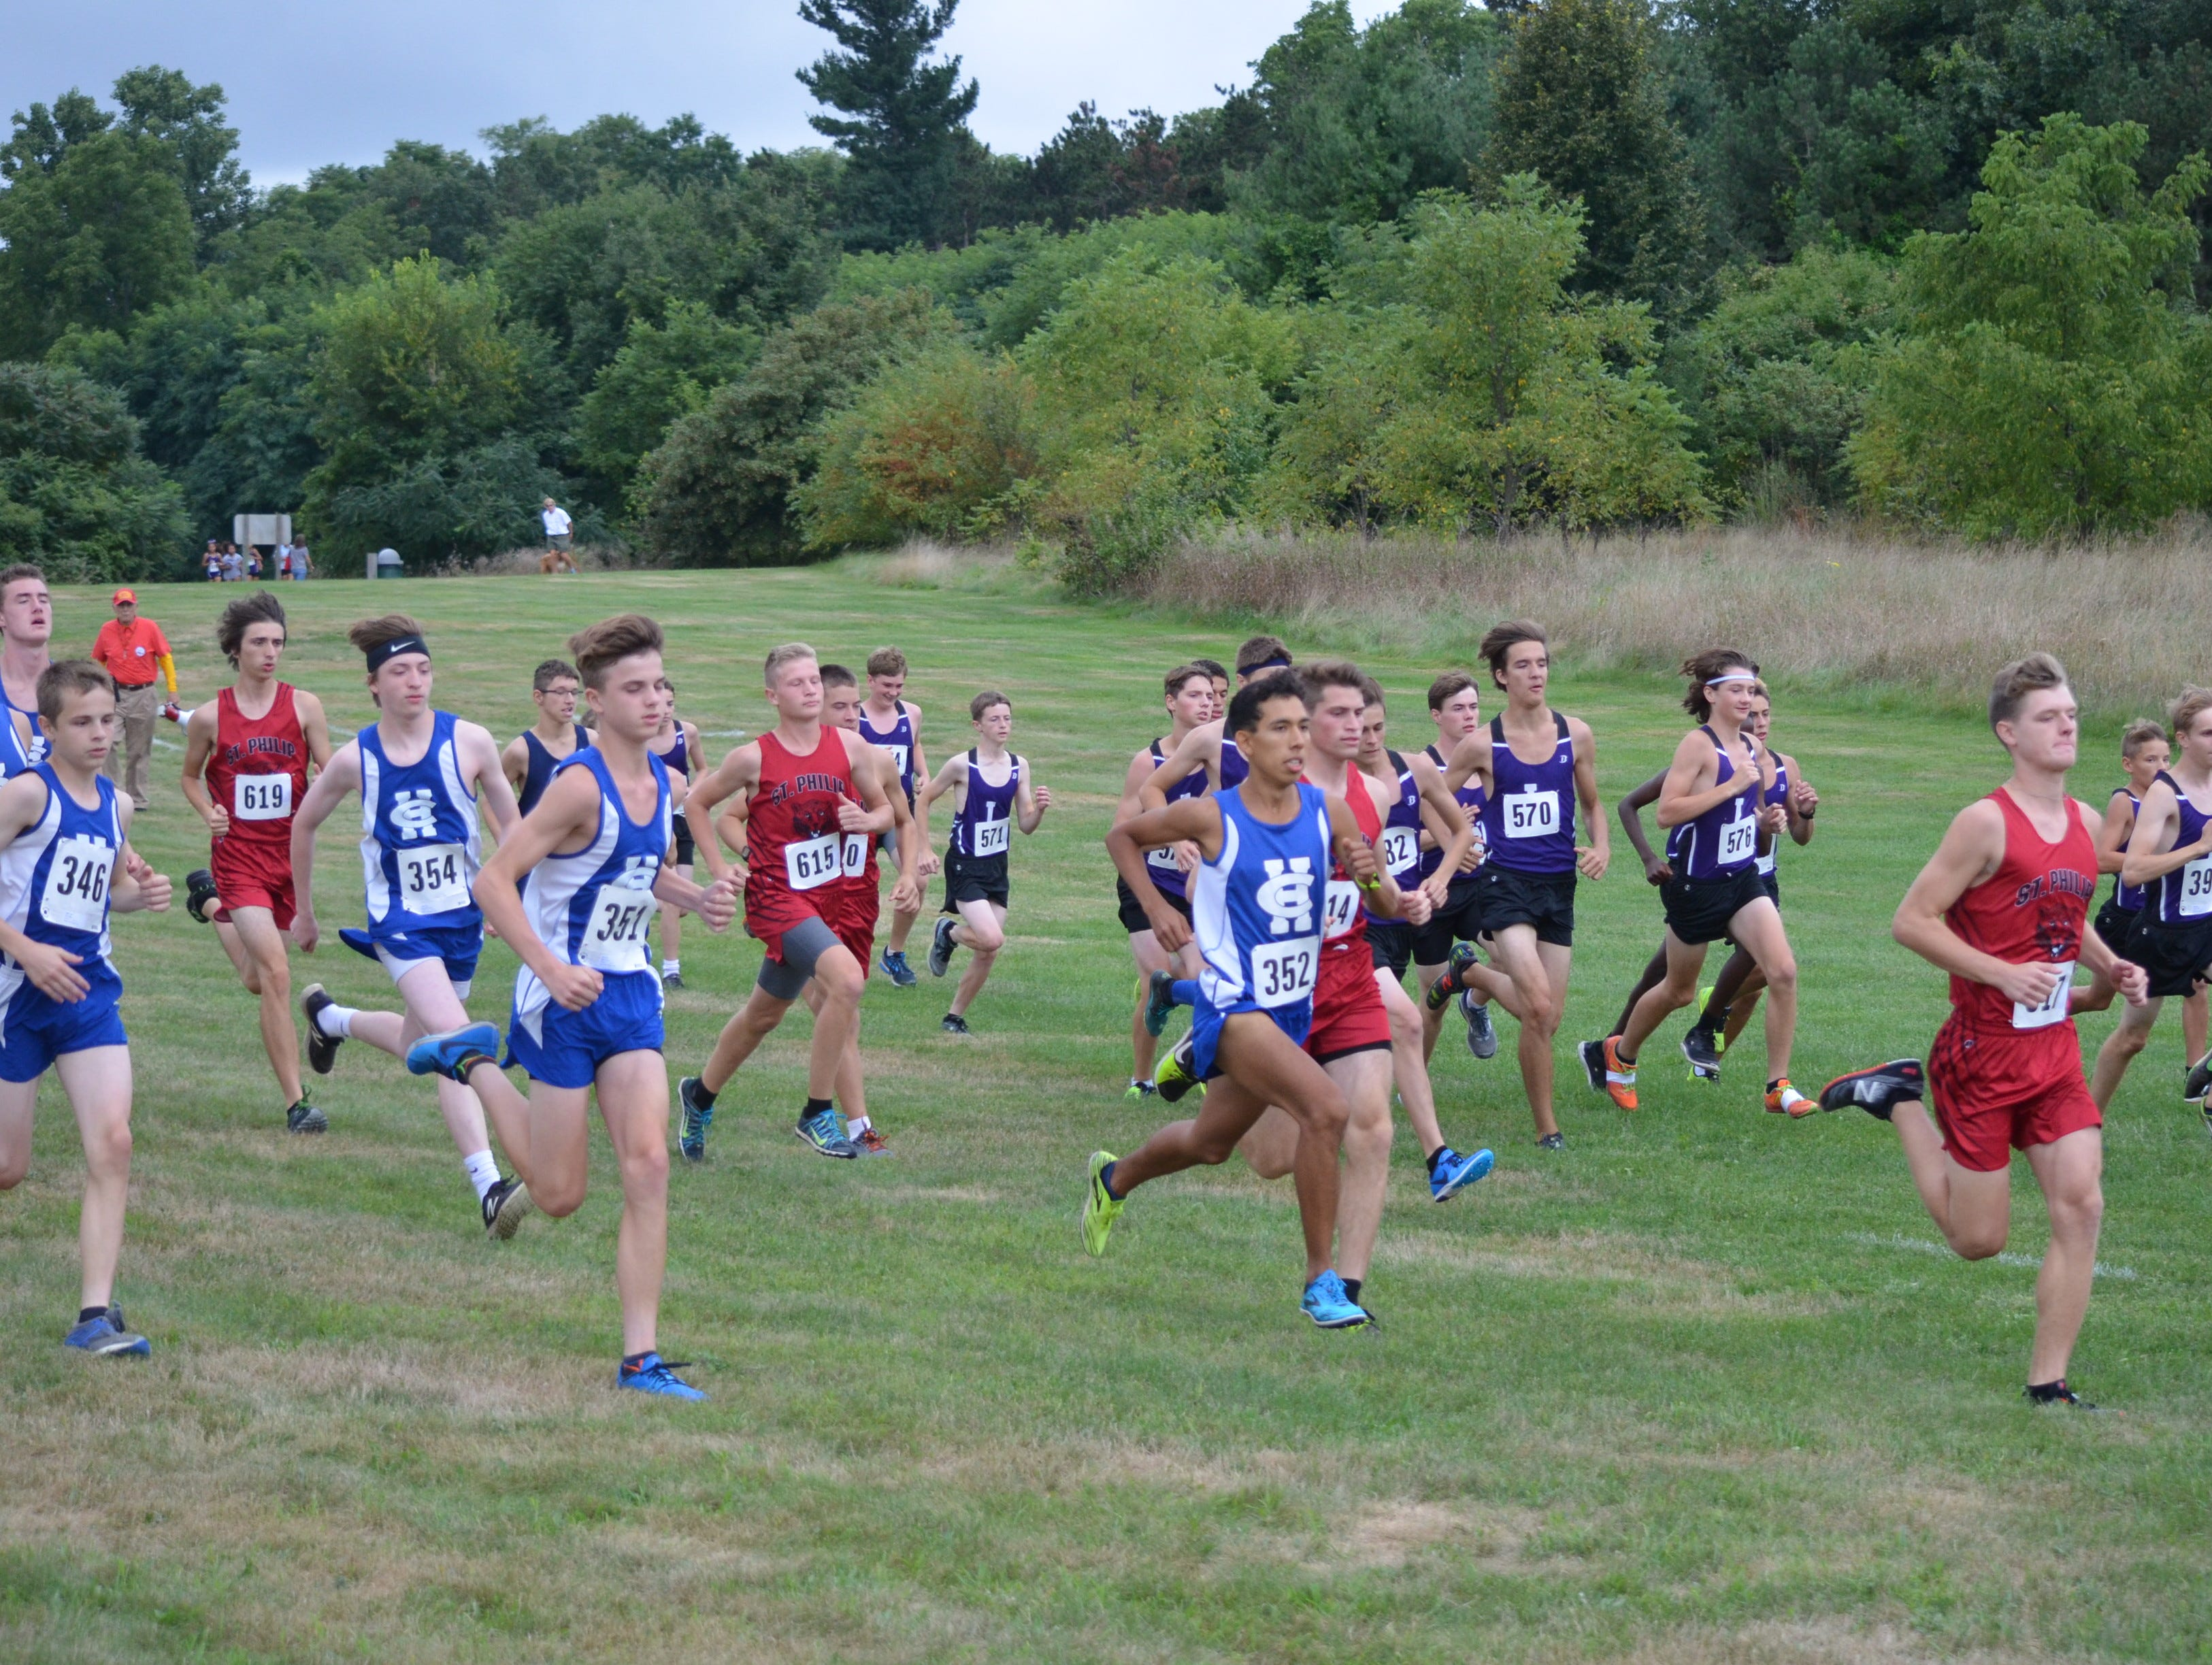 Runners take off from the starting line at the 2018 All-City Cross Country Meet.